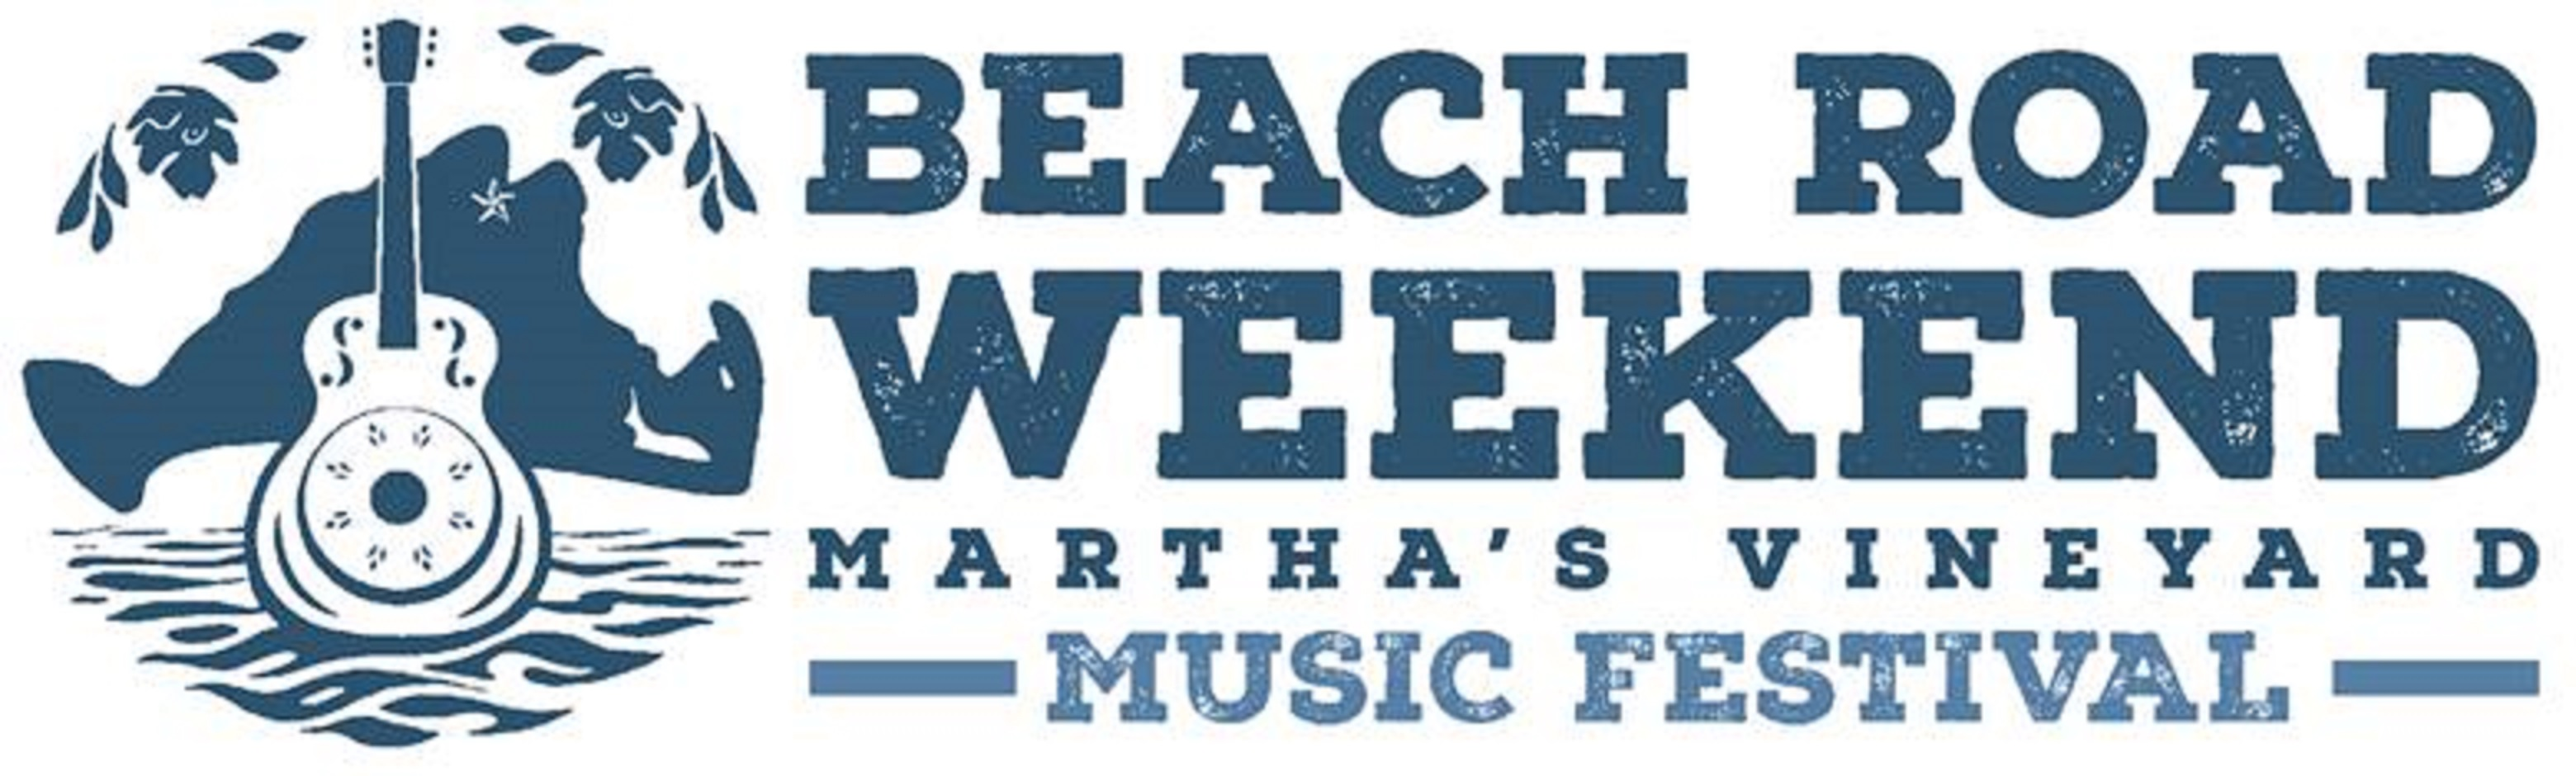 Beach Road Weekend 2020 Music Festival Cancelled